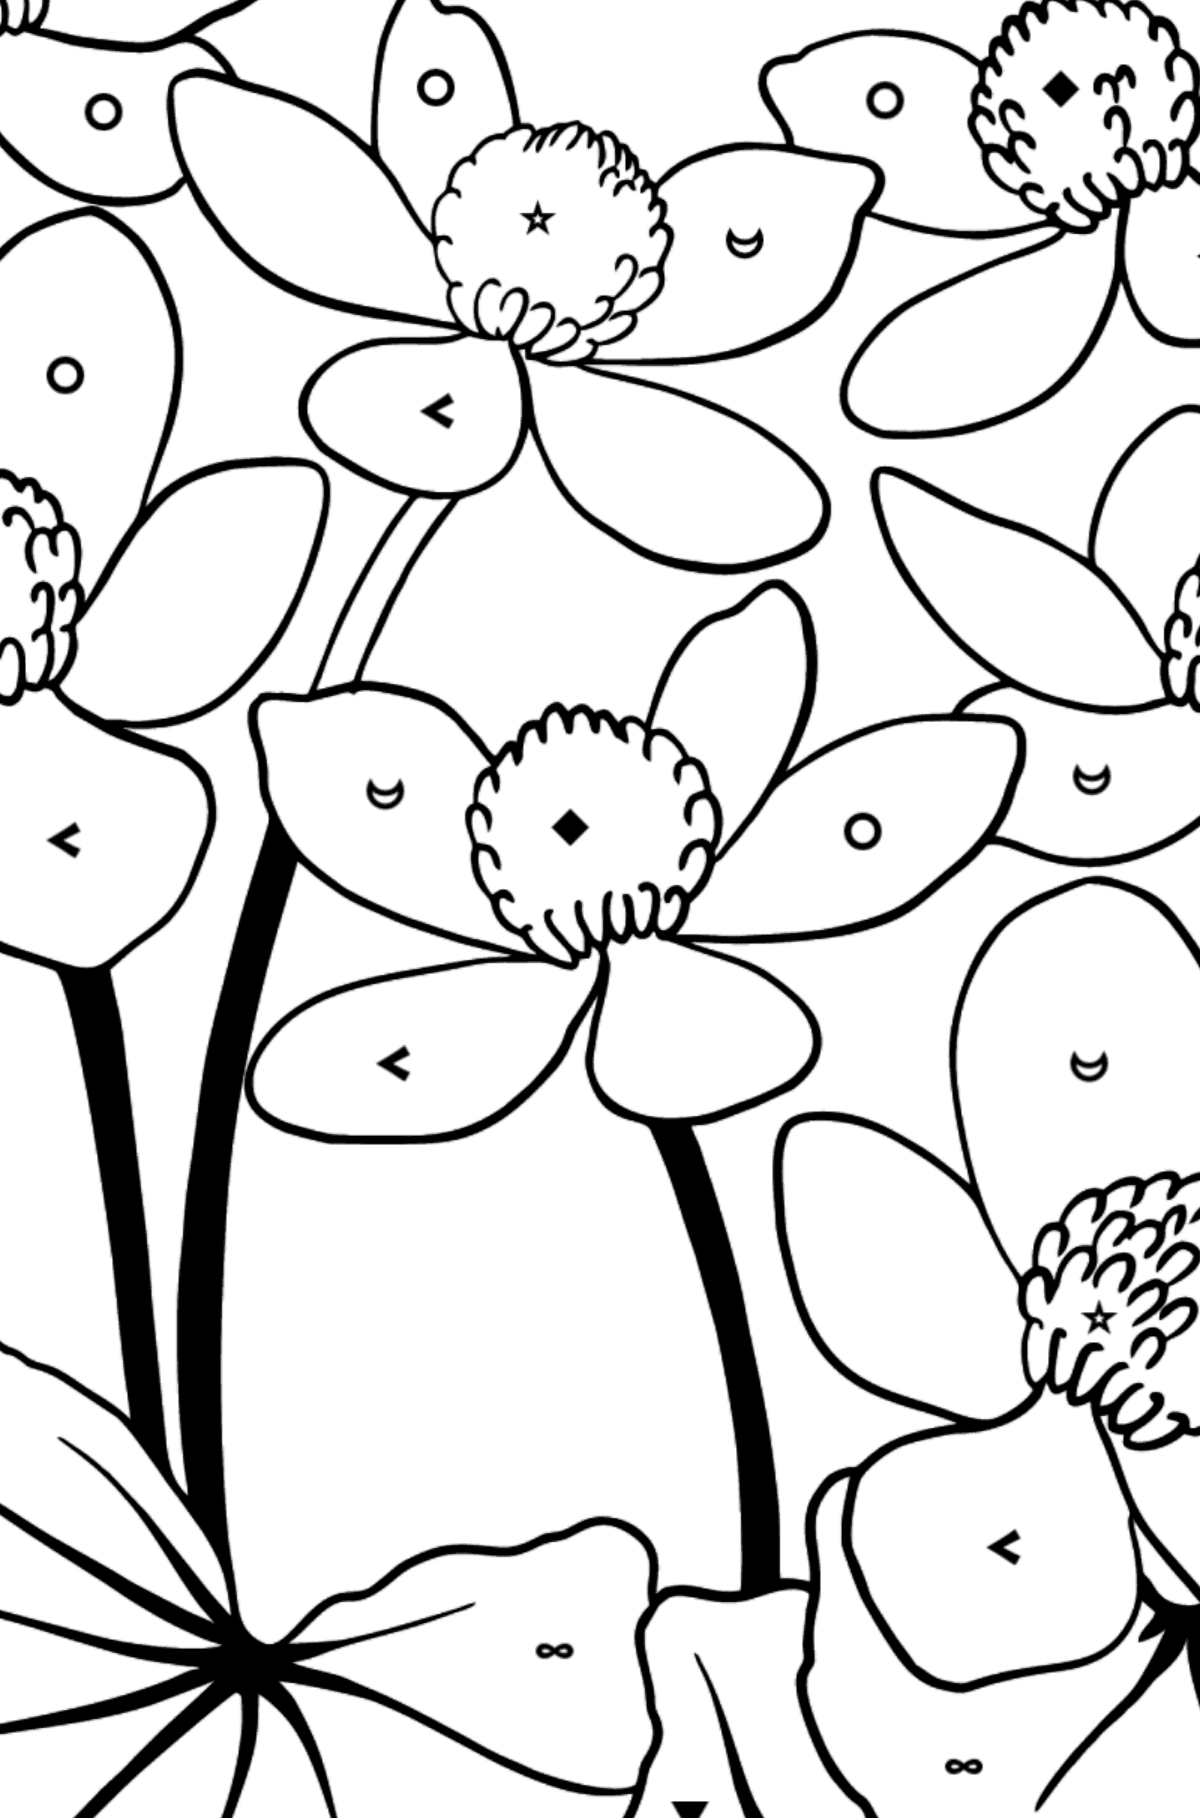 Flower Coloring Page - Marsh Marigold - Coloring by Symbols and Geometric Shapes for Kids